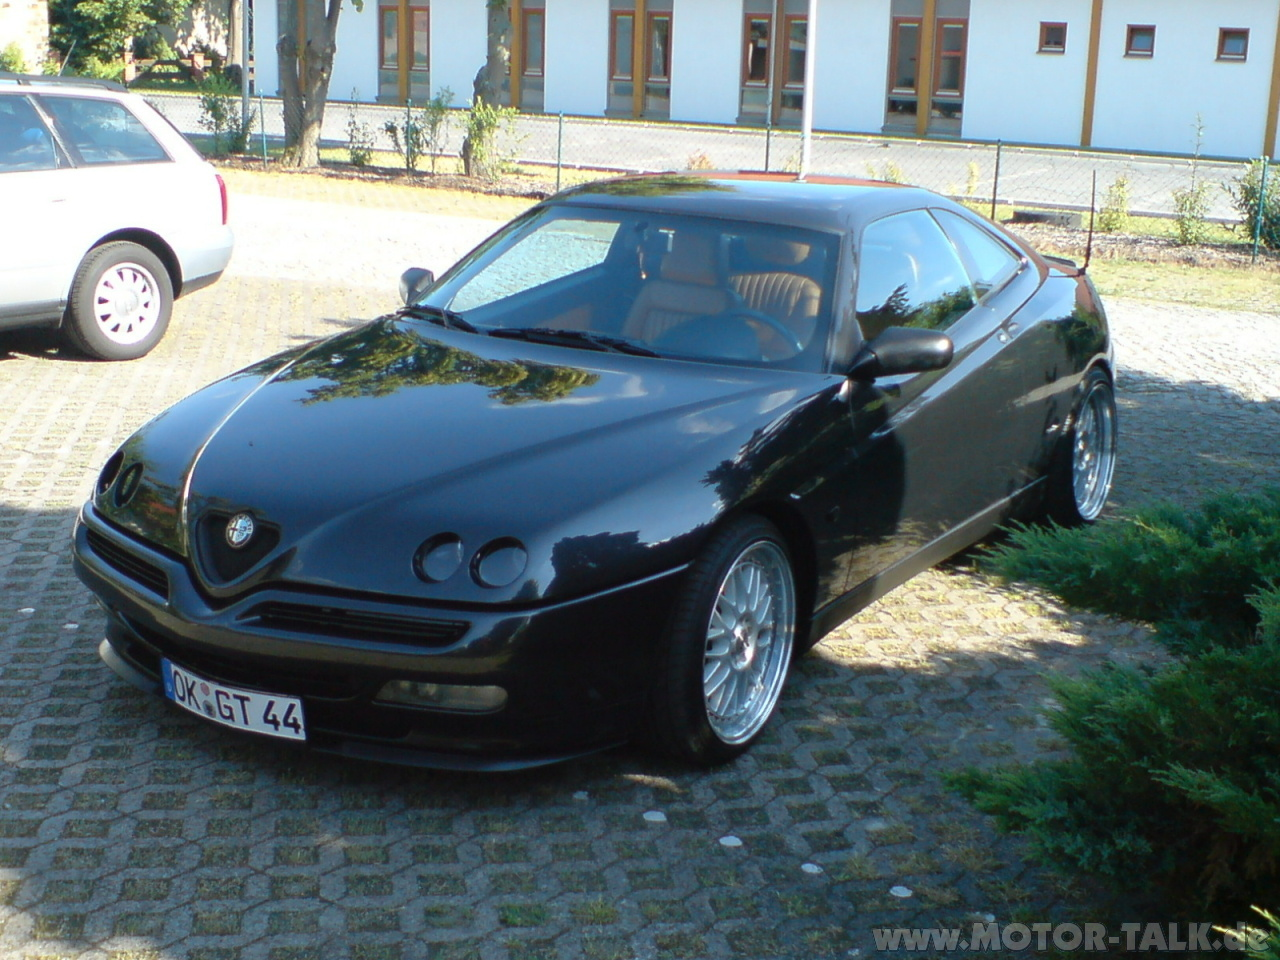 2001 Alfa romeo Gtv (916) – pictures, information and